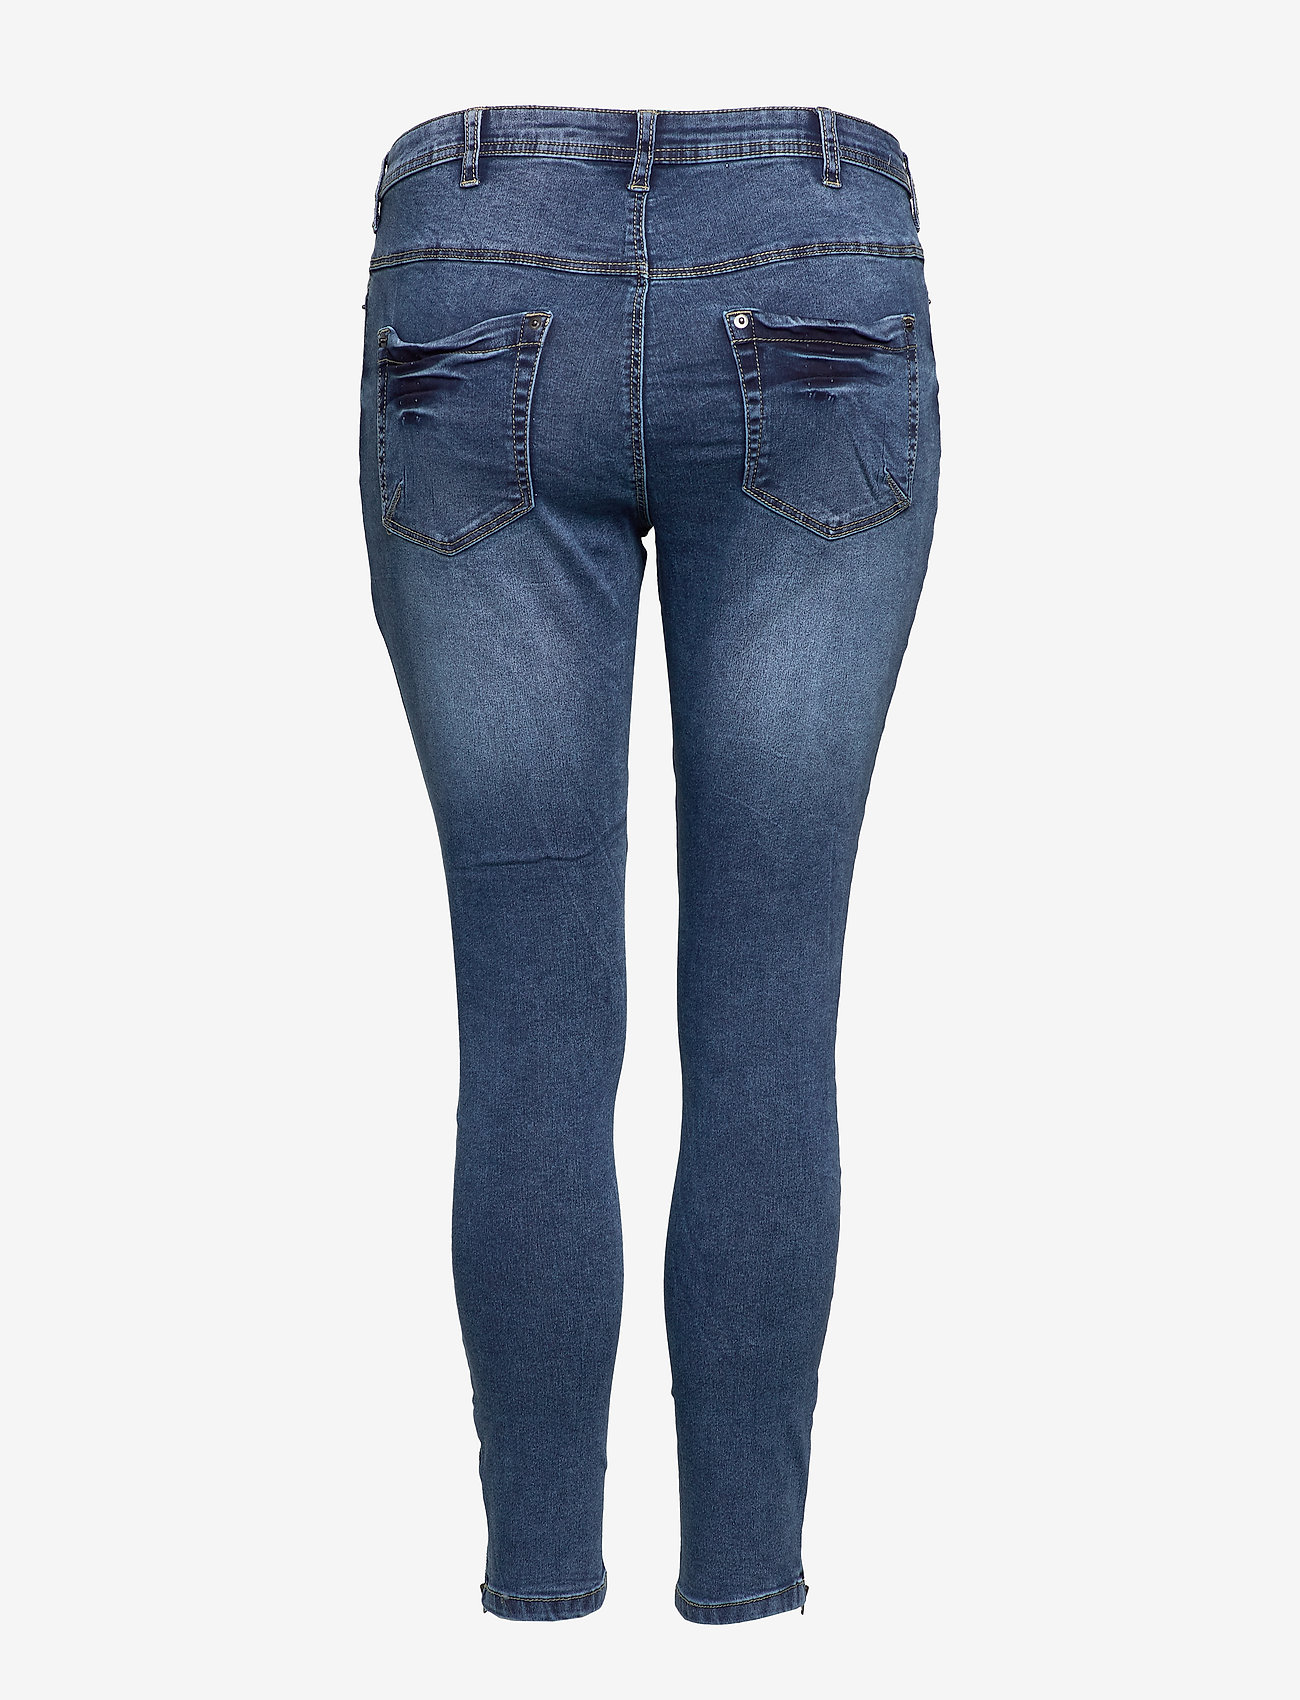 Jeans, Cropped, Amy (Blue) - Zizzi iY3YFy